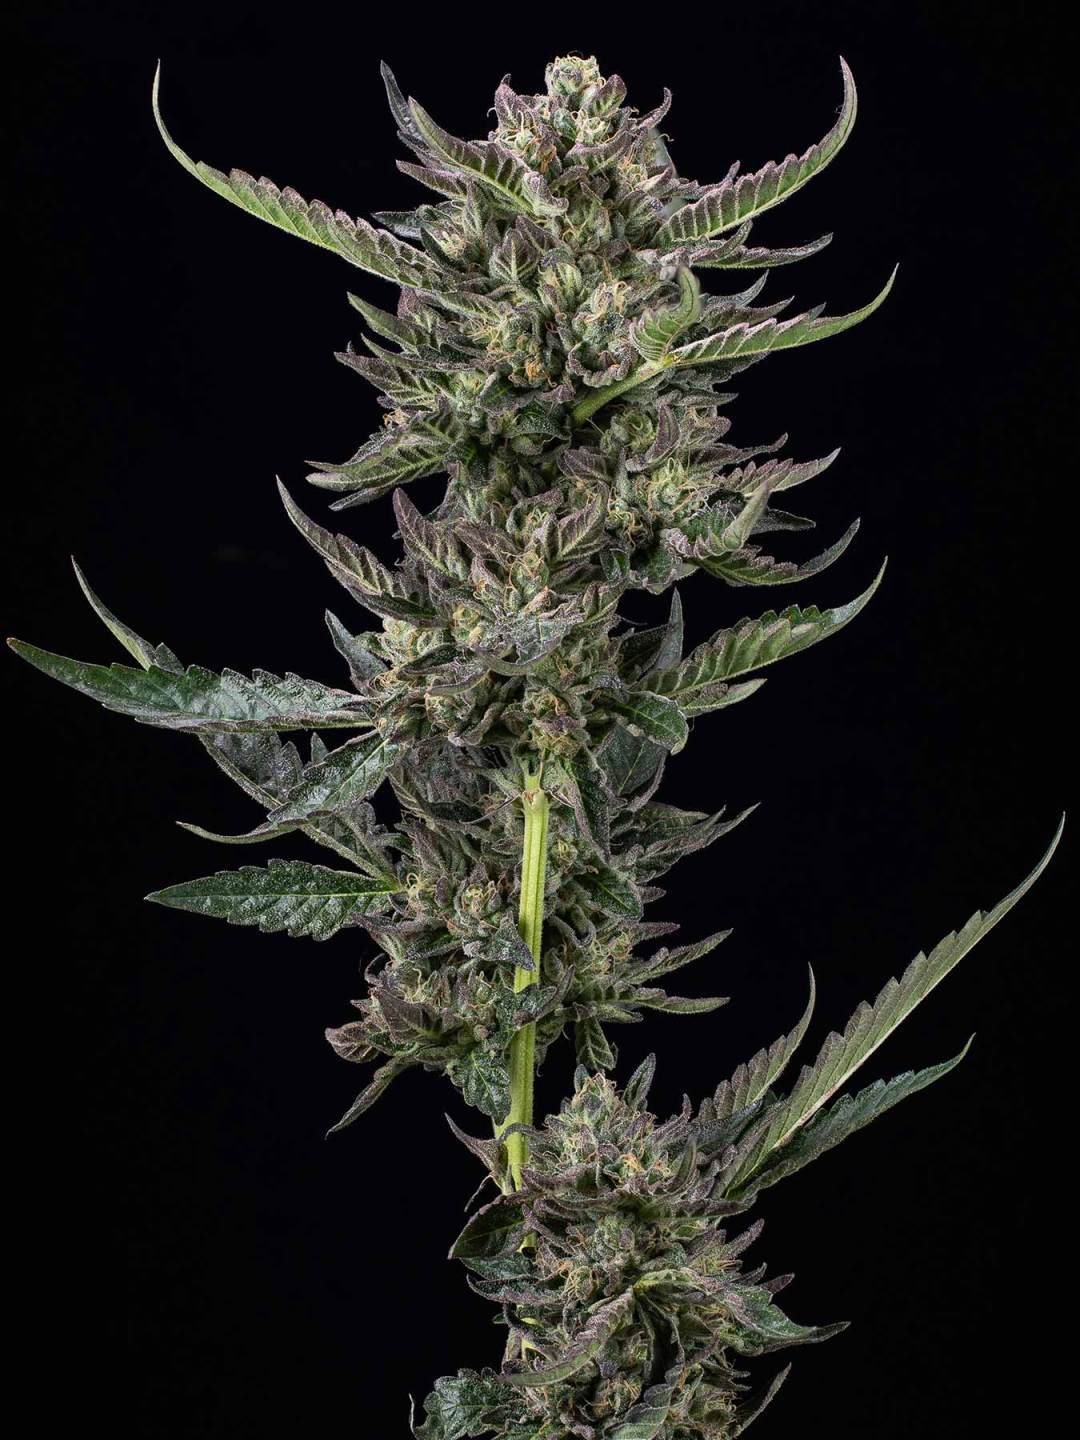 Notorious THC delivers maximum stone. (Courtesy of Humboldt Seed Co.)